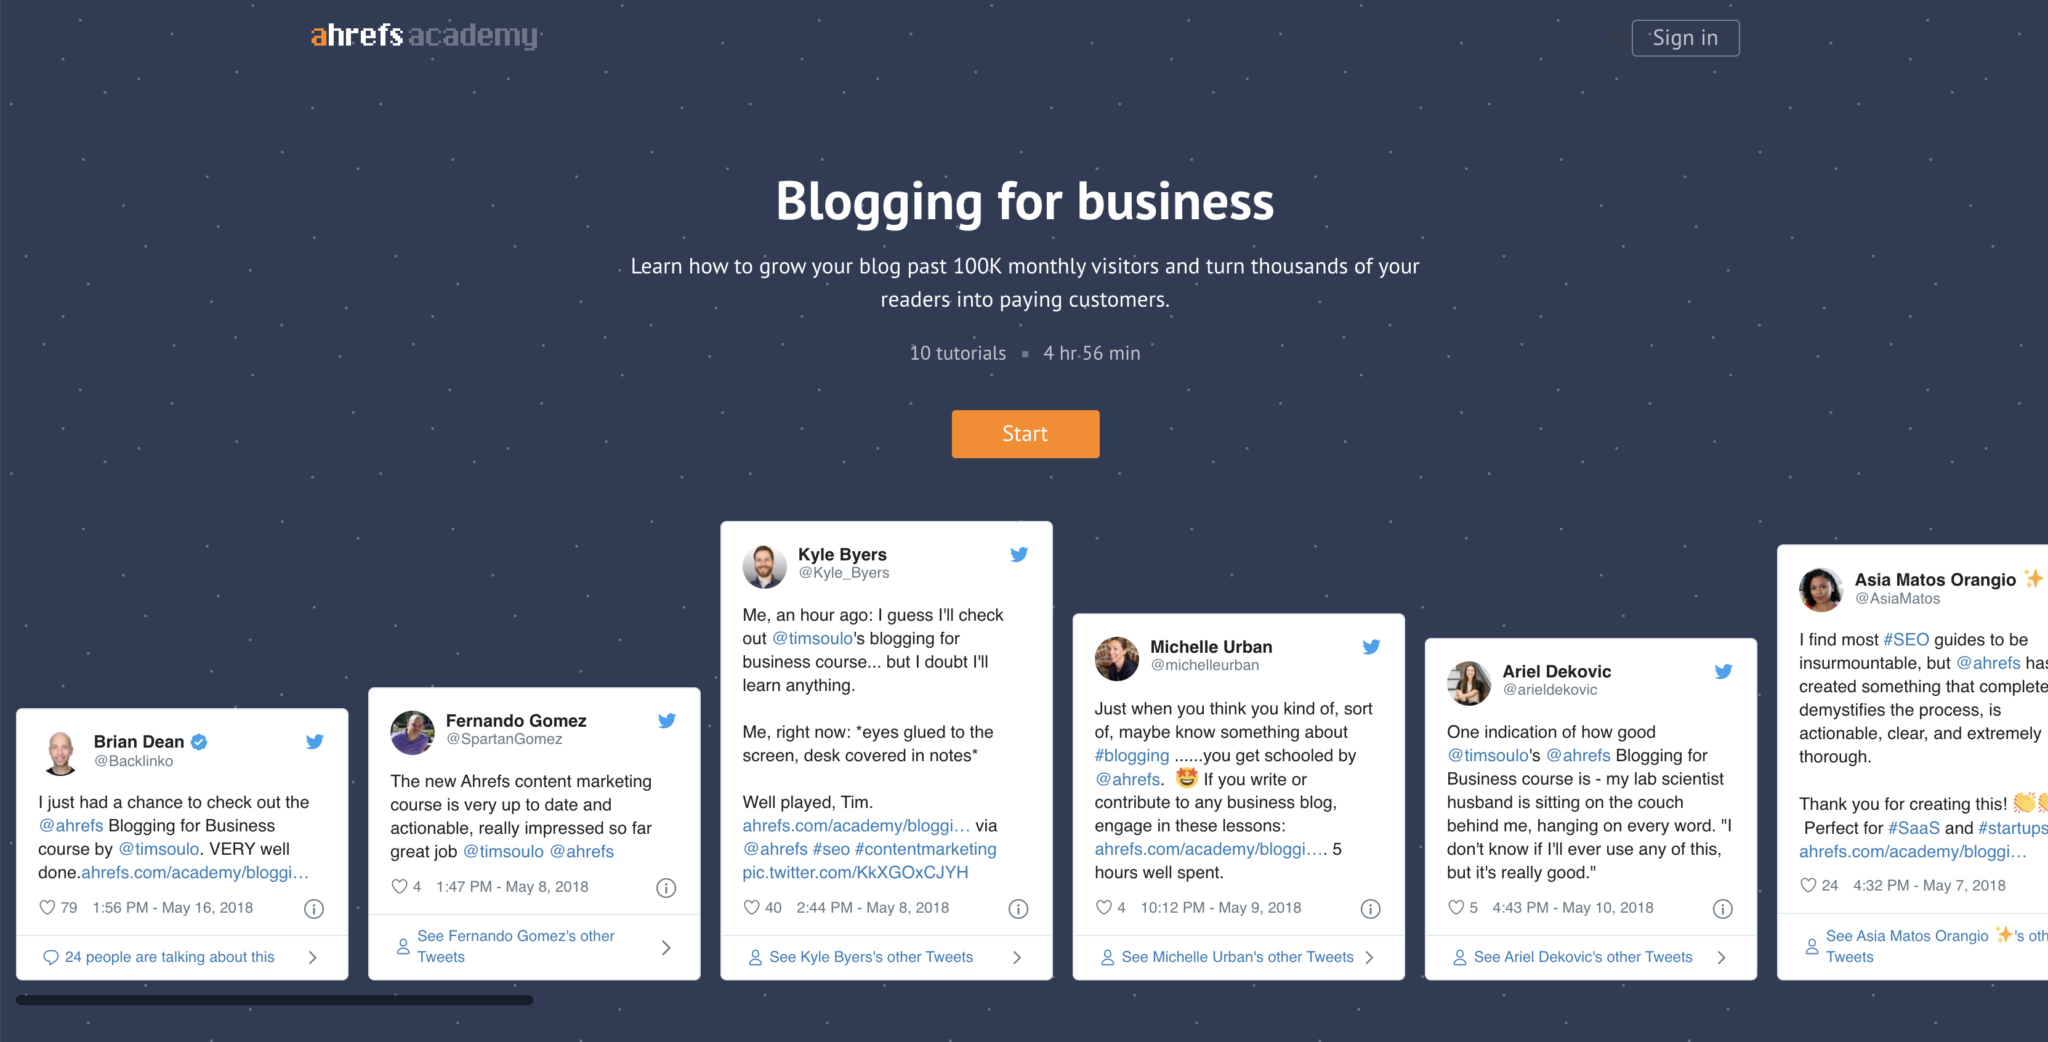 ahrefs-blogging-for-business